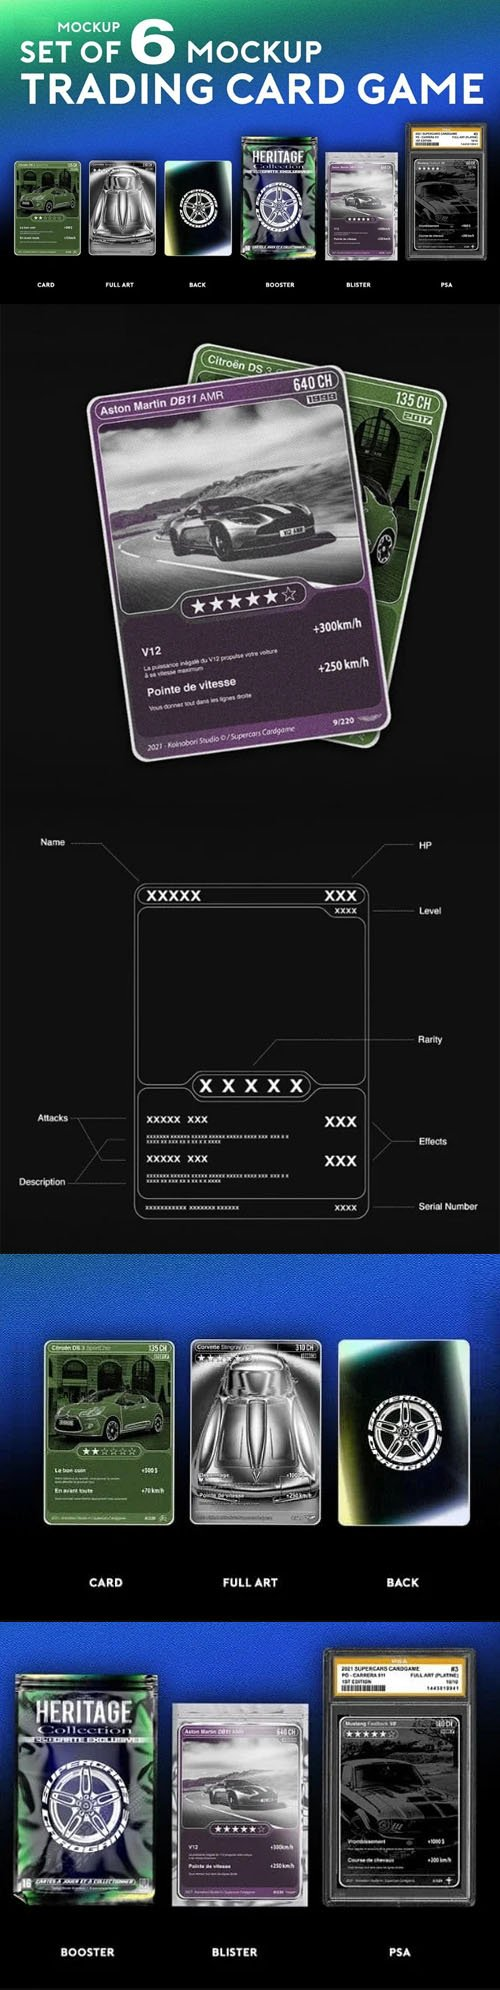 Trading Cards Game - Set of 6 PSD Mockup Templates